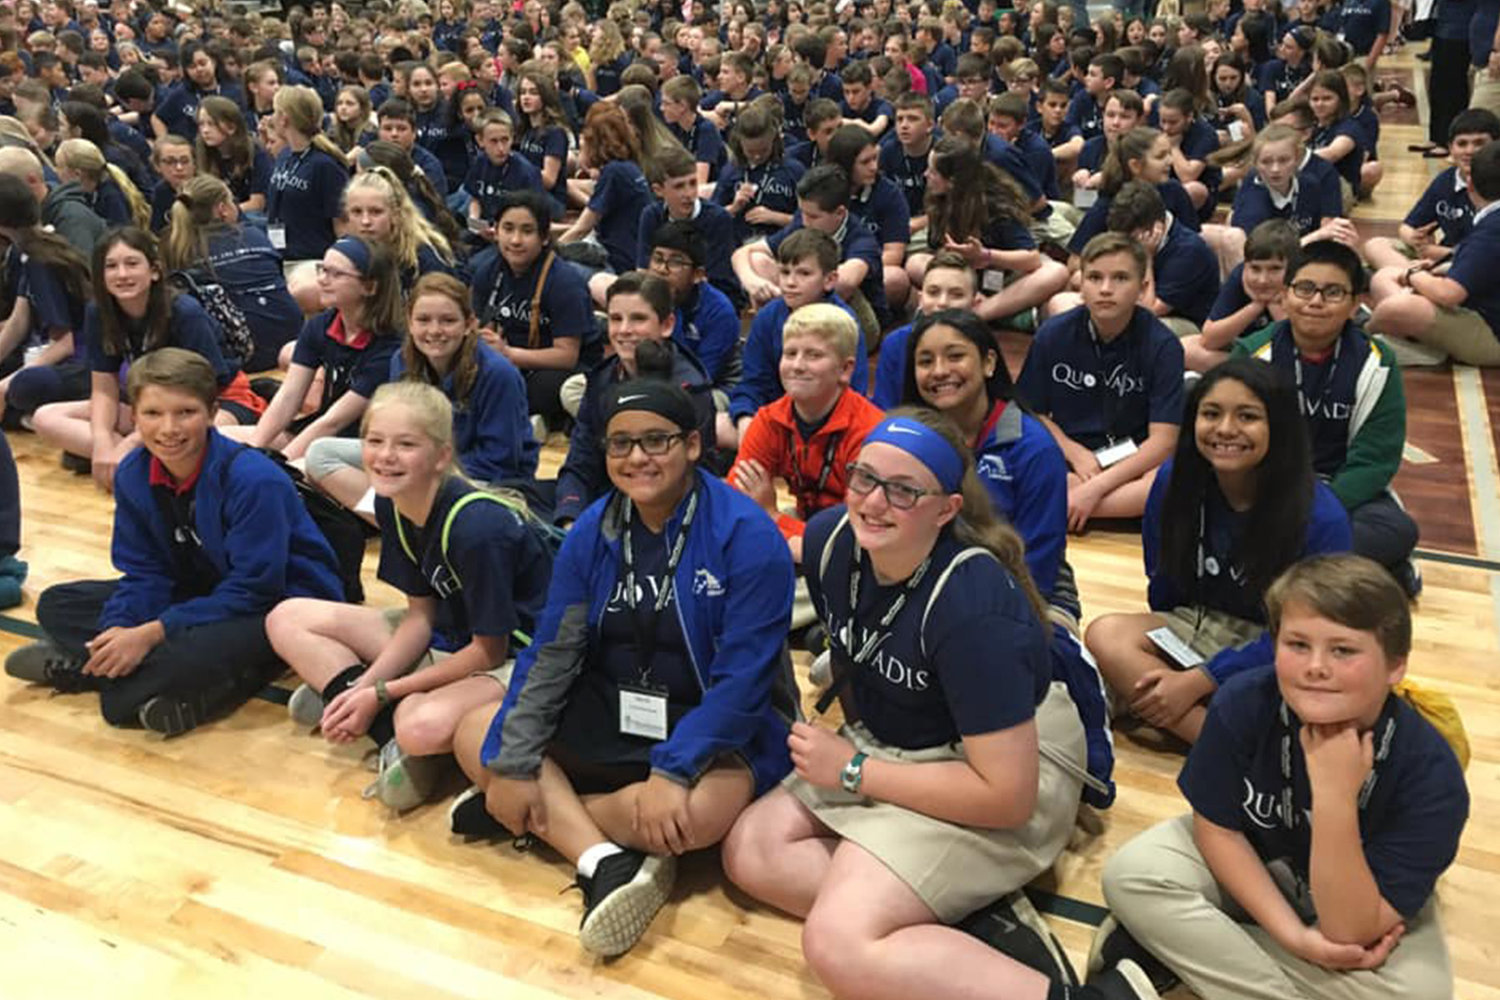 Sixth-graders from St. Peter School in Marshall were among the hundreds who gathered in the St. Joseph Cathedral School Gymnasium for the keynote presentation.